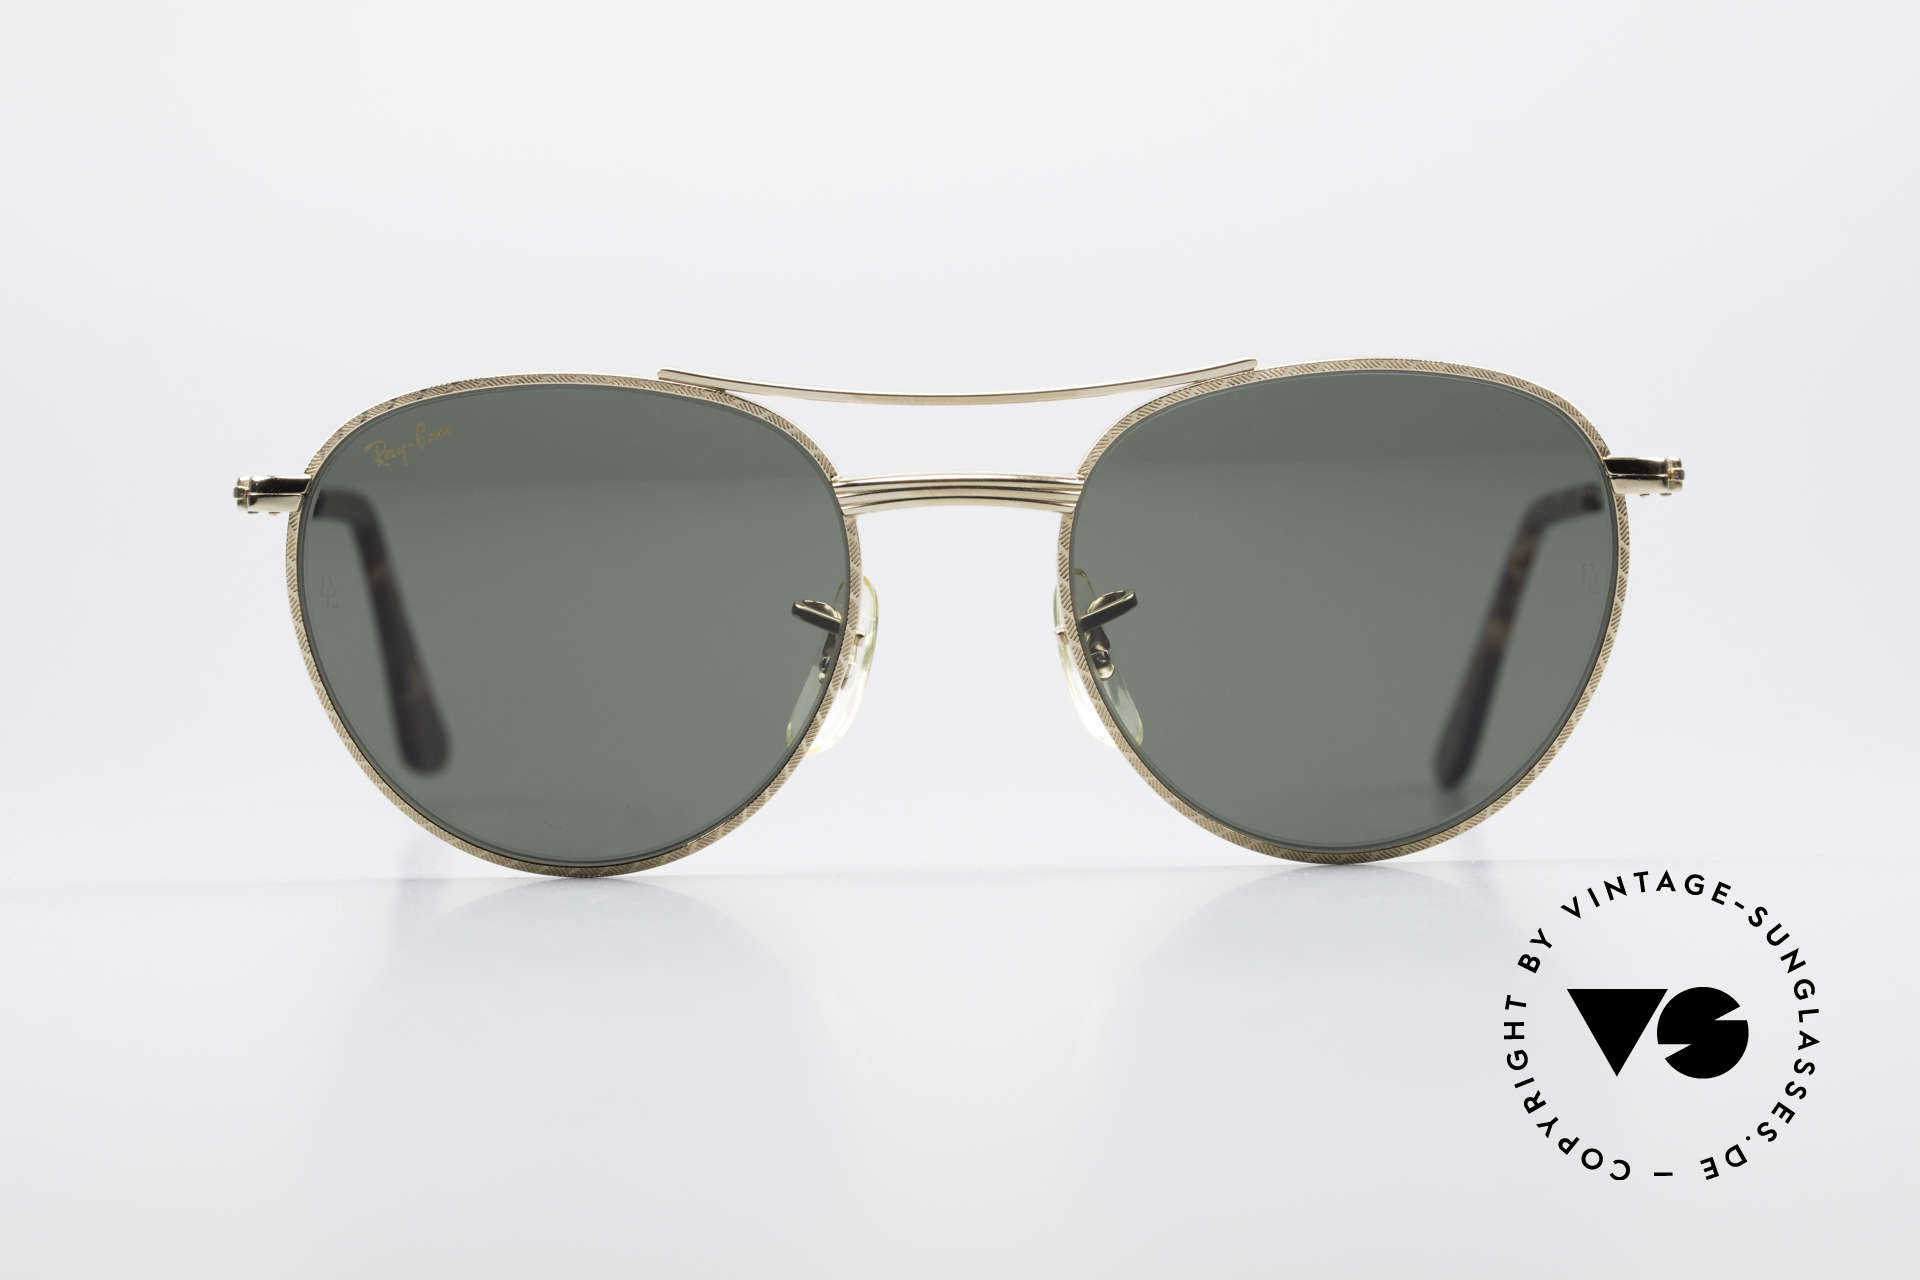 522417faf2a3 You may also like these glasses. Ray Ban Classic Style I Diamond Hard  Sunglasses Details